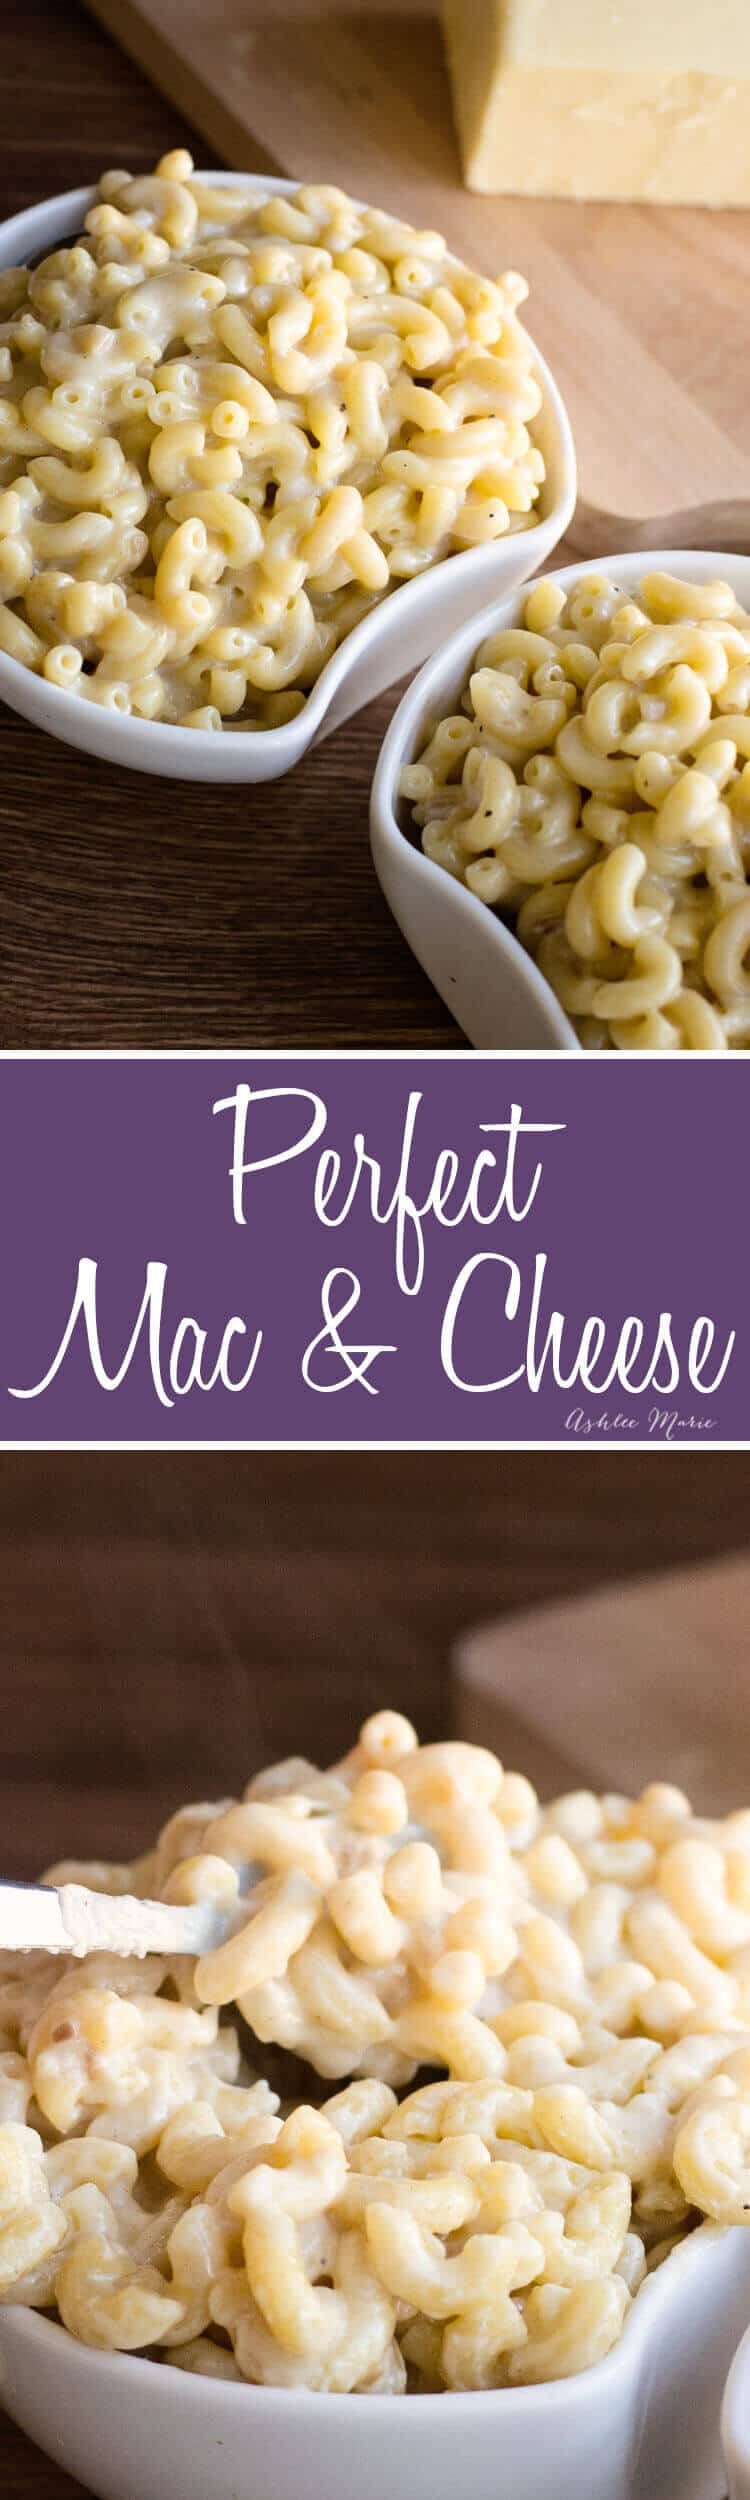 it doesn't get much better than homemade mac and cheese - esp this version with three types of white cheese and no fail sauce base!